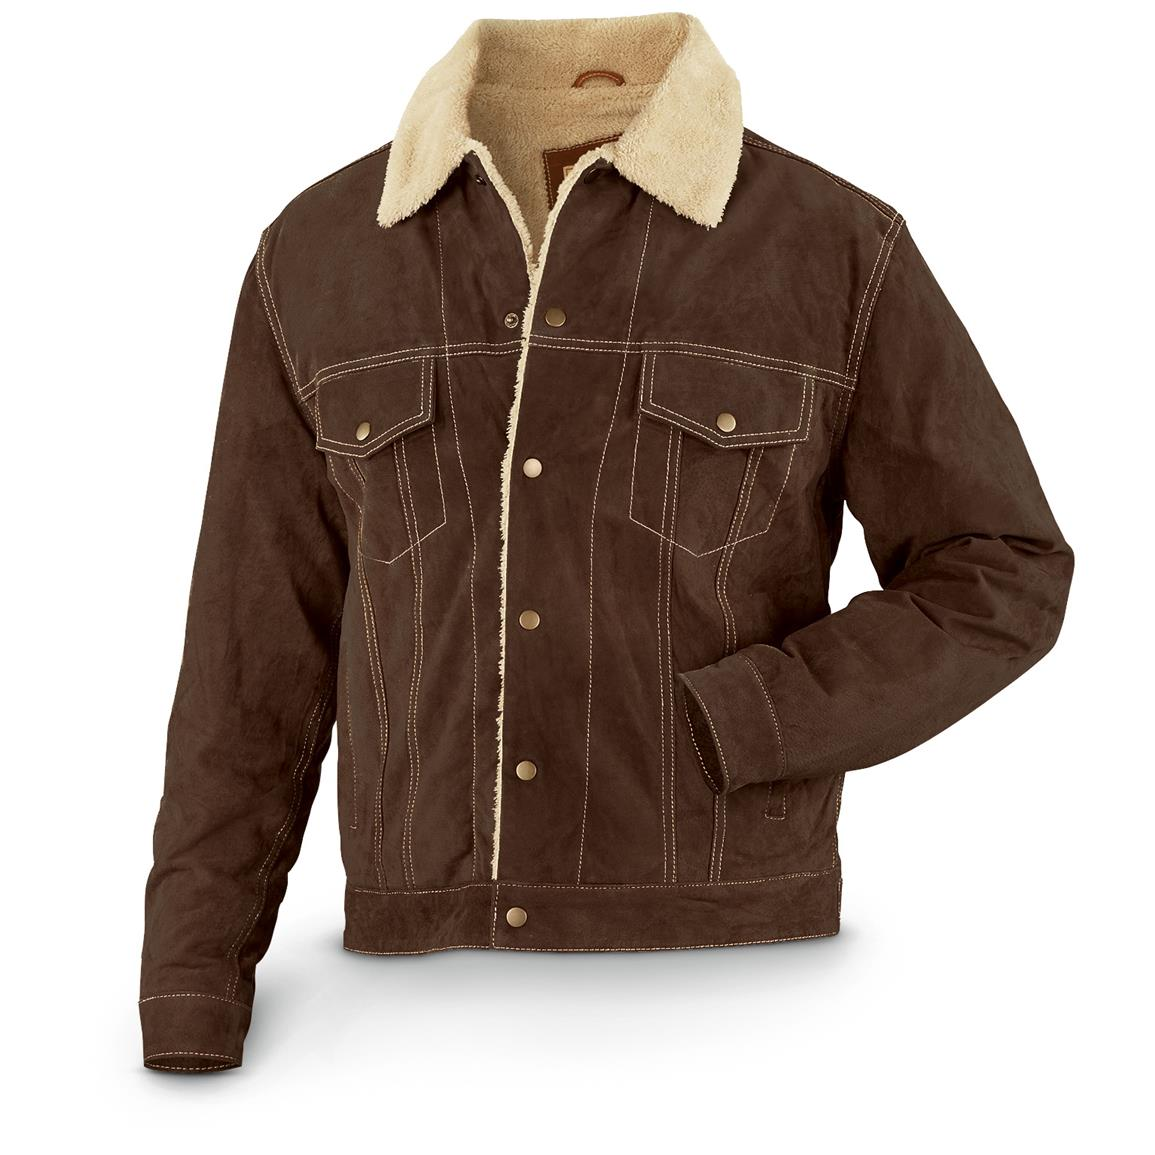 Scully 113 Suede Jacket, Chocolate